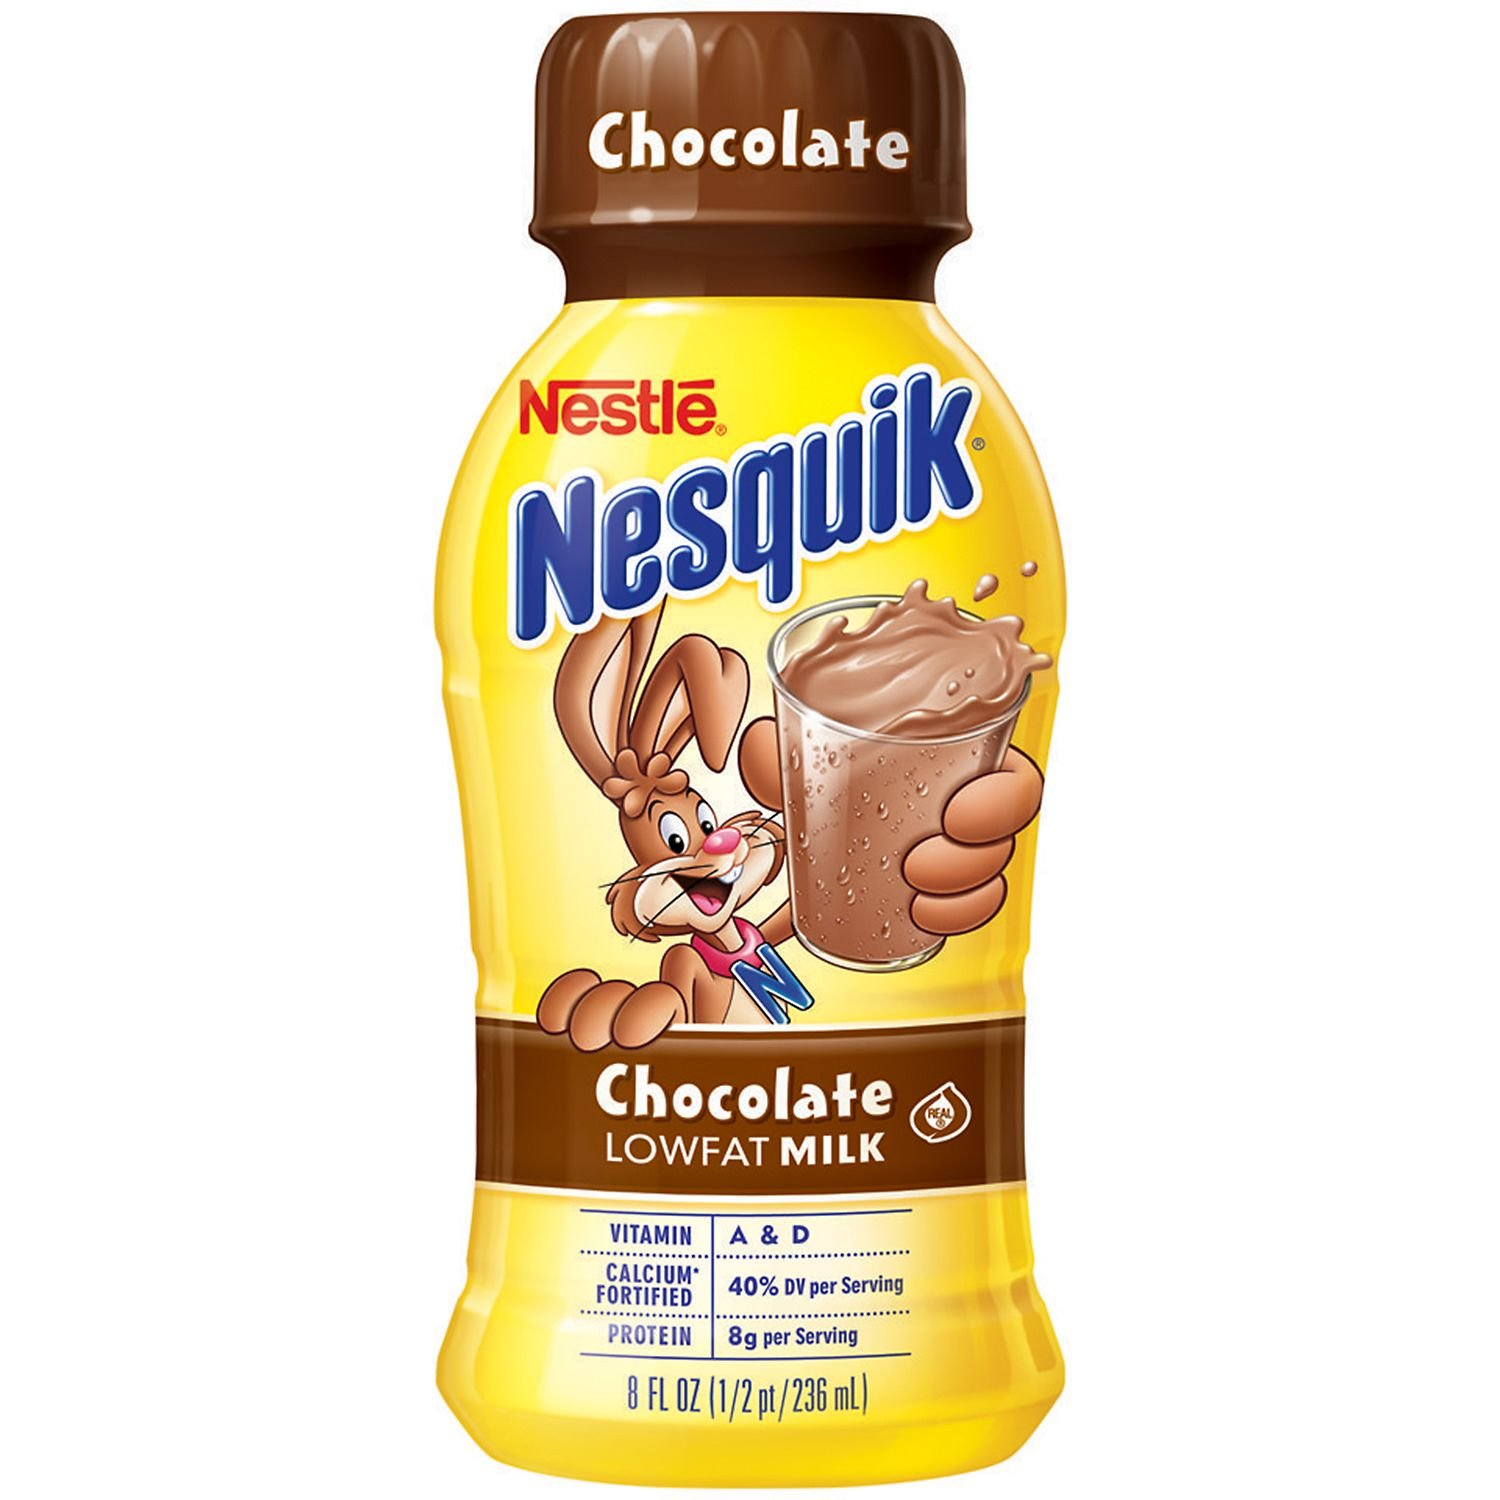 Nesquik Chocolate Low Fat Milk (8 oz. bottles, 15 pk.)- 2 PACKS